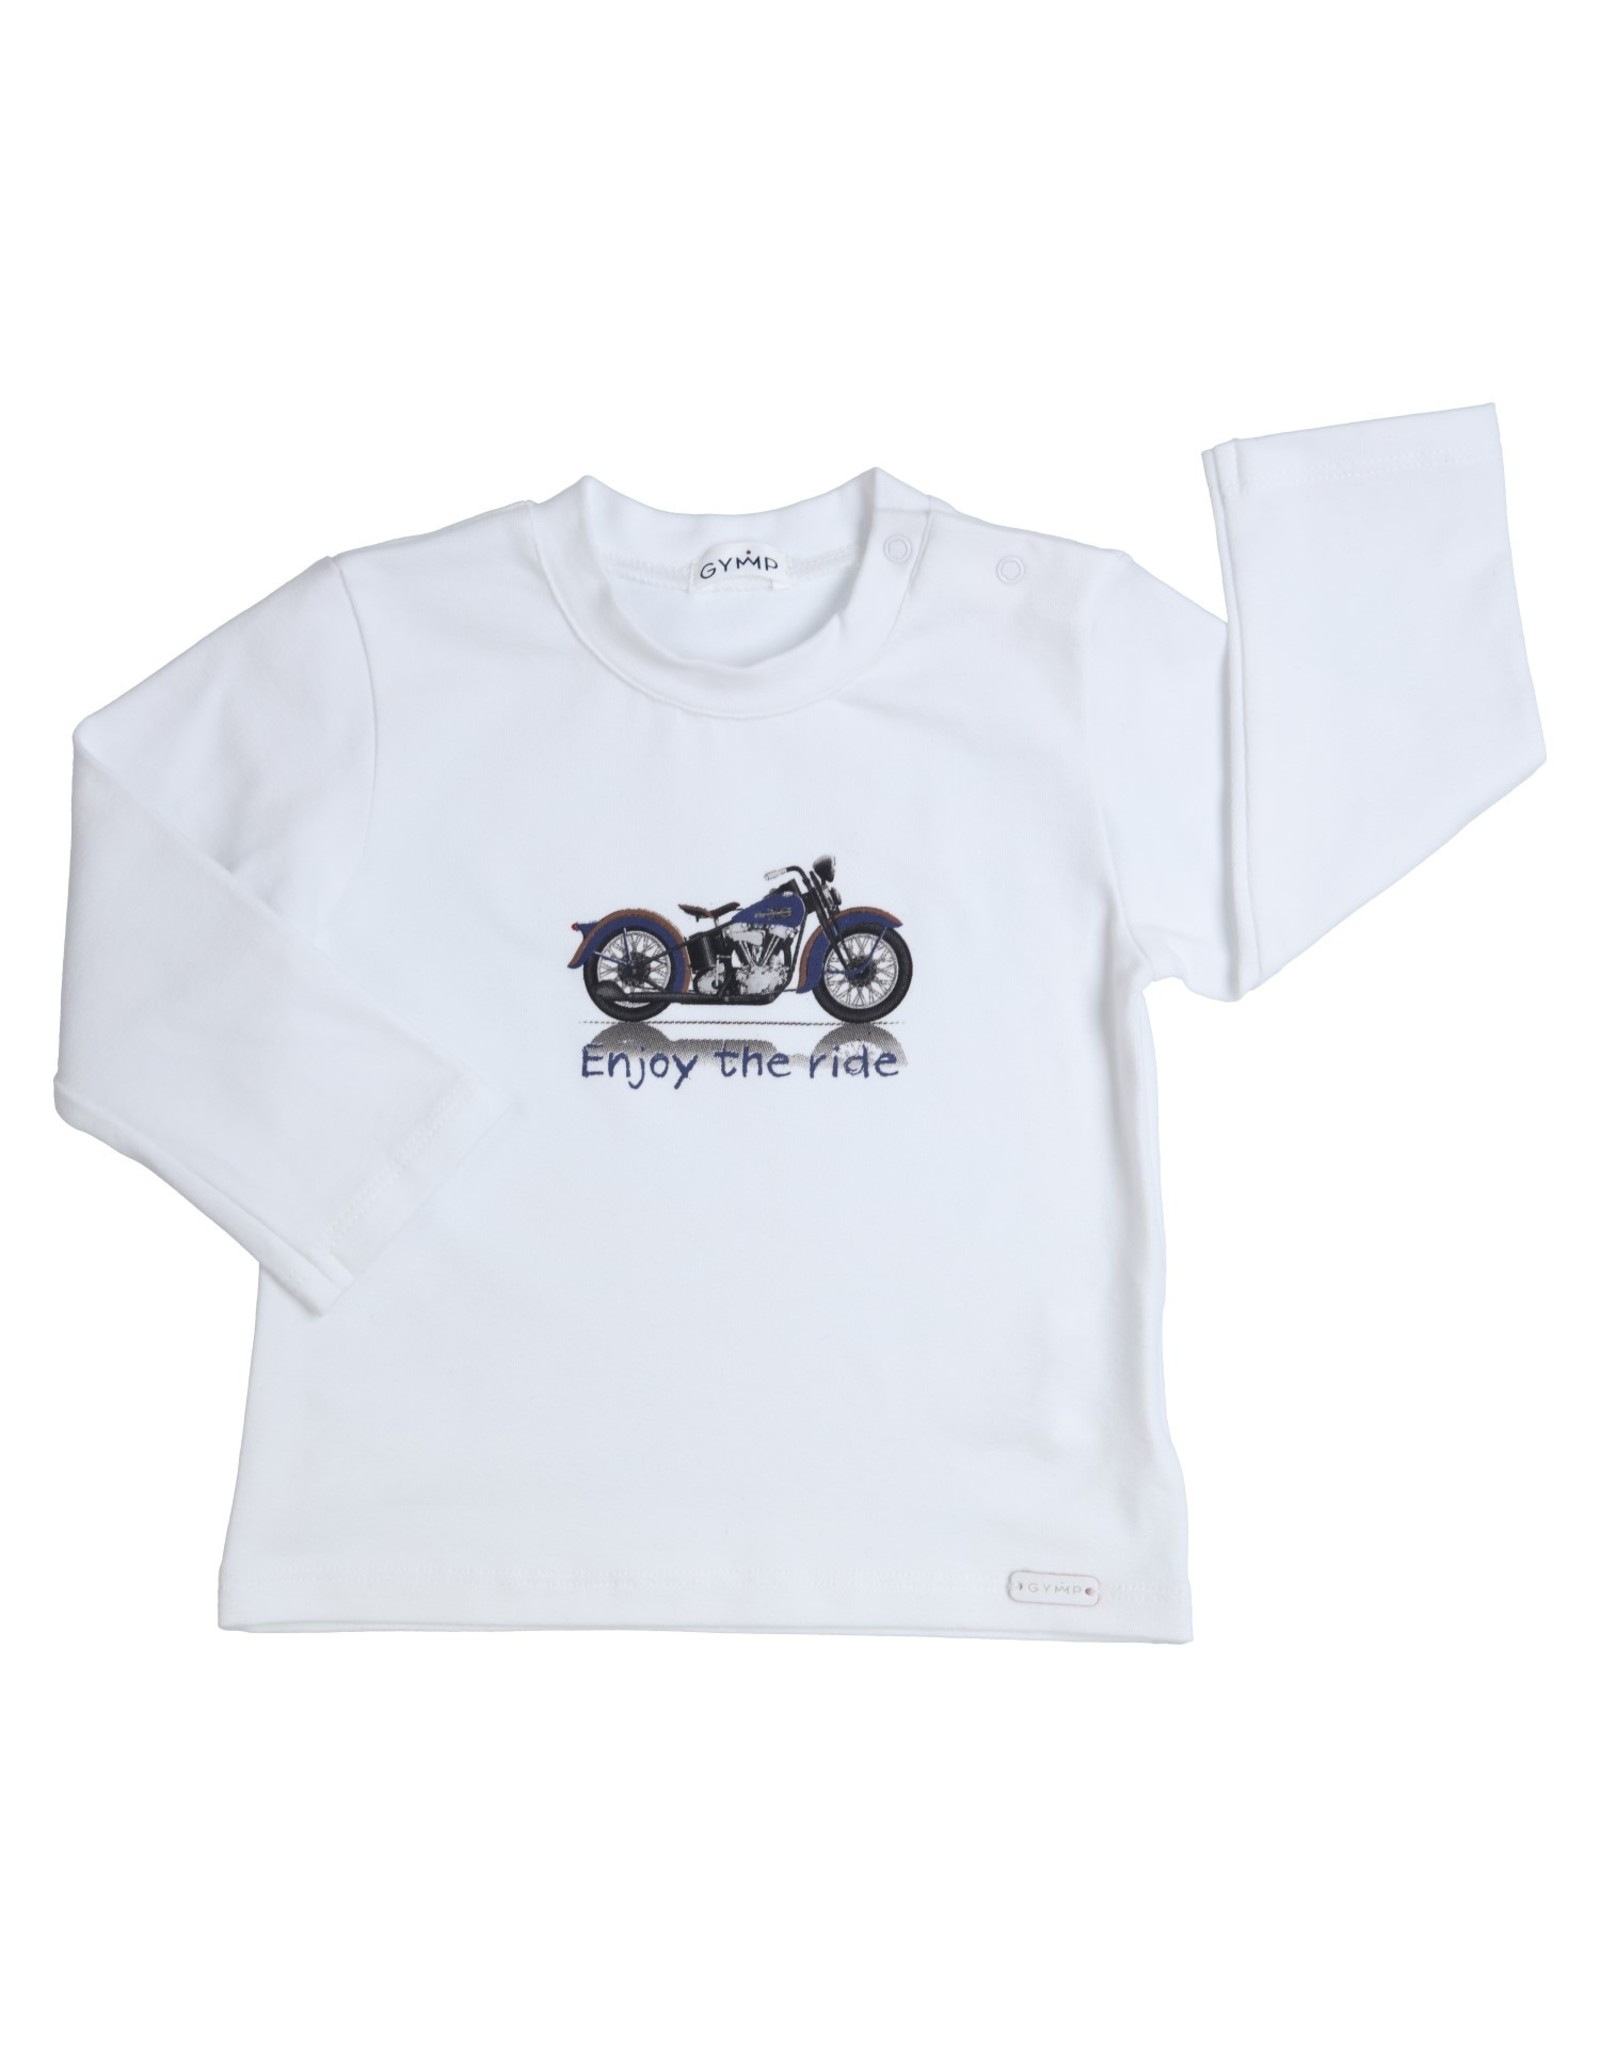 Gymp LONGSLEEVE - ENJOY THE RIDE,  WIT